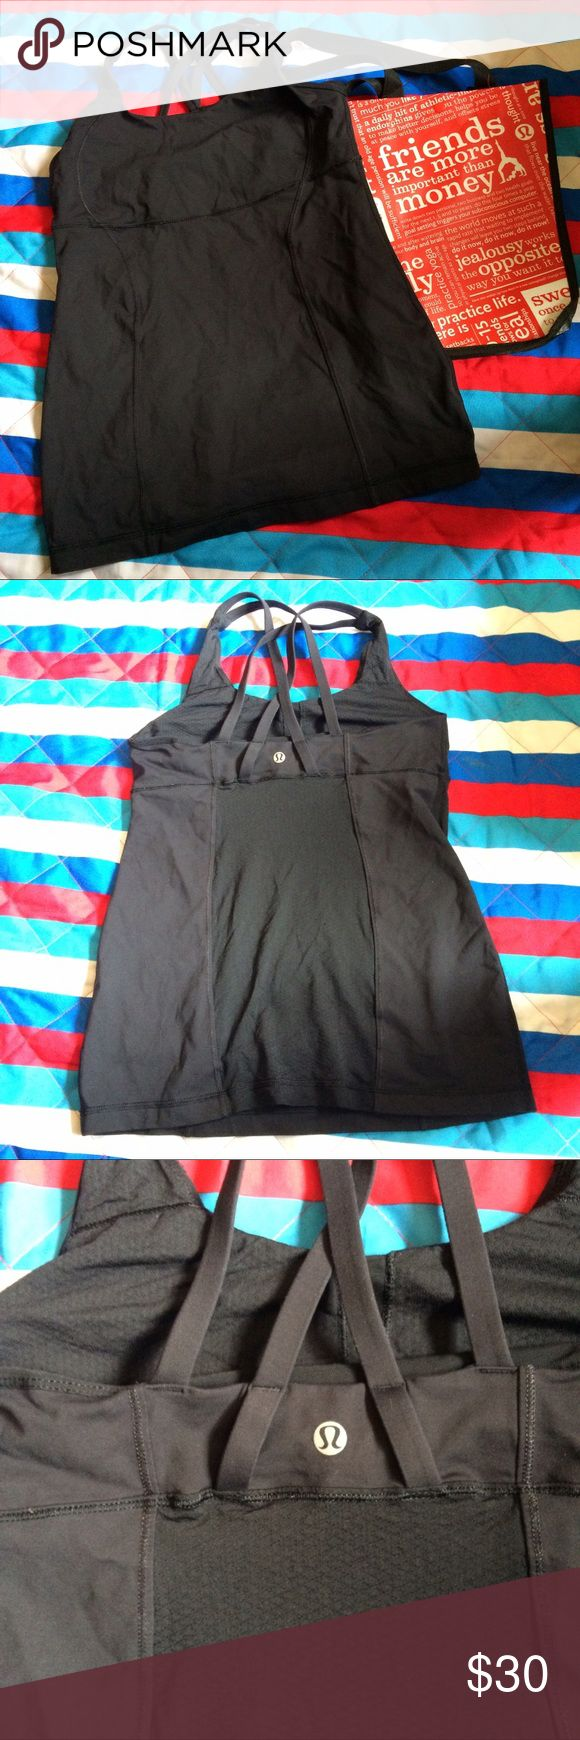 Lululemon Tank EUC...Lululemon Tank, with built in sport bra no padding, double cross back and super comfy, I couldn't locate size inside bra but it's a size 8...Price reflect brand and condition, ask any questions below before purchase, giving my best description cause I only have a set of eye, if I do miss anything I do apologize, low ball me and I will decline...no I don't model... lululemon athletica Tops Tank Tops